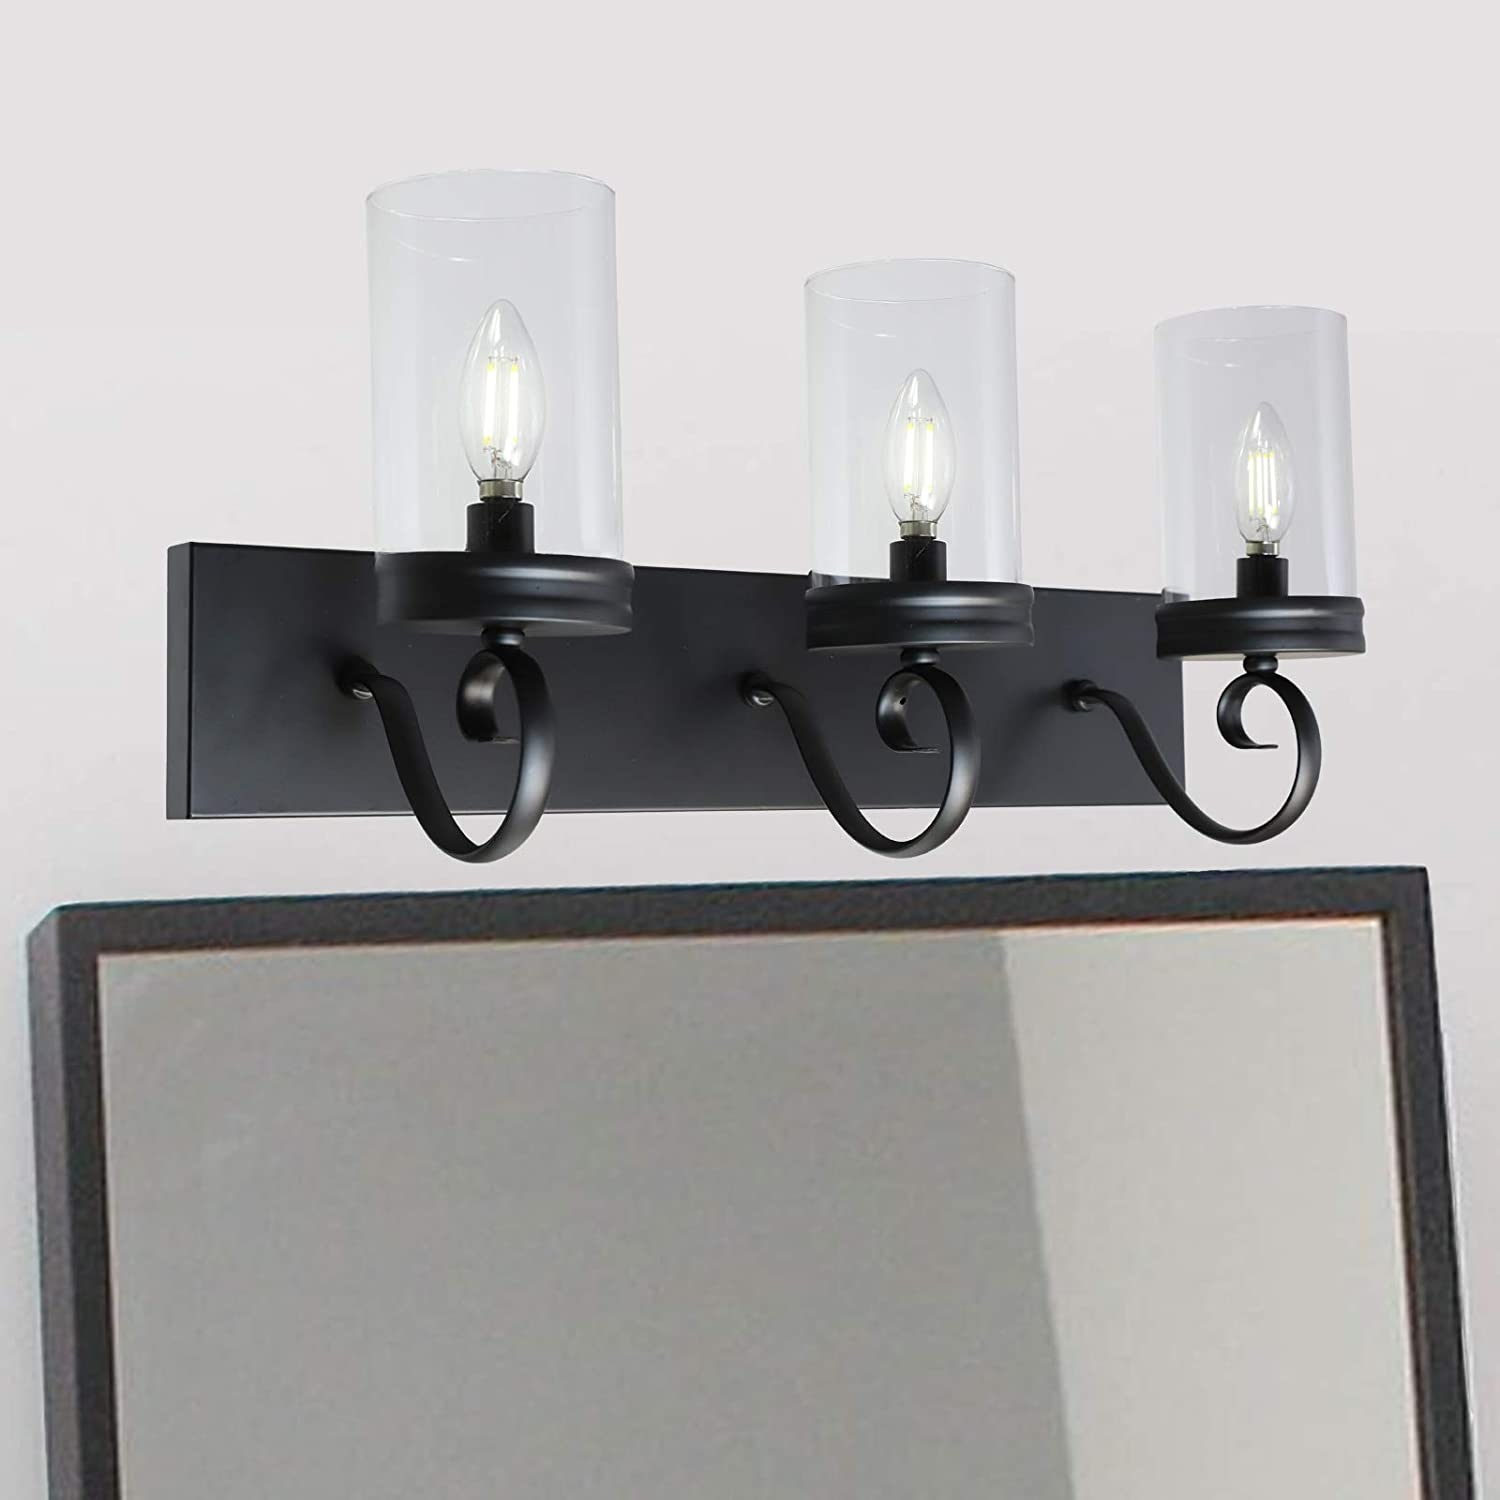 Lucidce 20 Light Farmhouse Vanity Lights Black Bathroom Lighting Fixtures  with Clear Glass Shade Retro Rustic Wall Lights for Bedroom Living Room